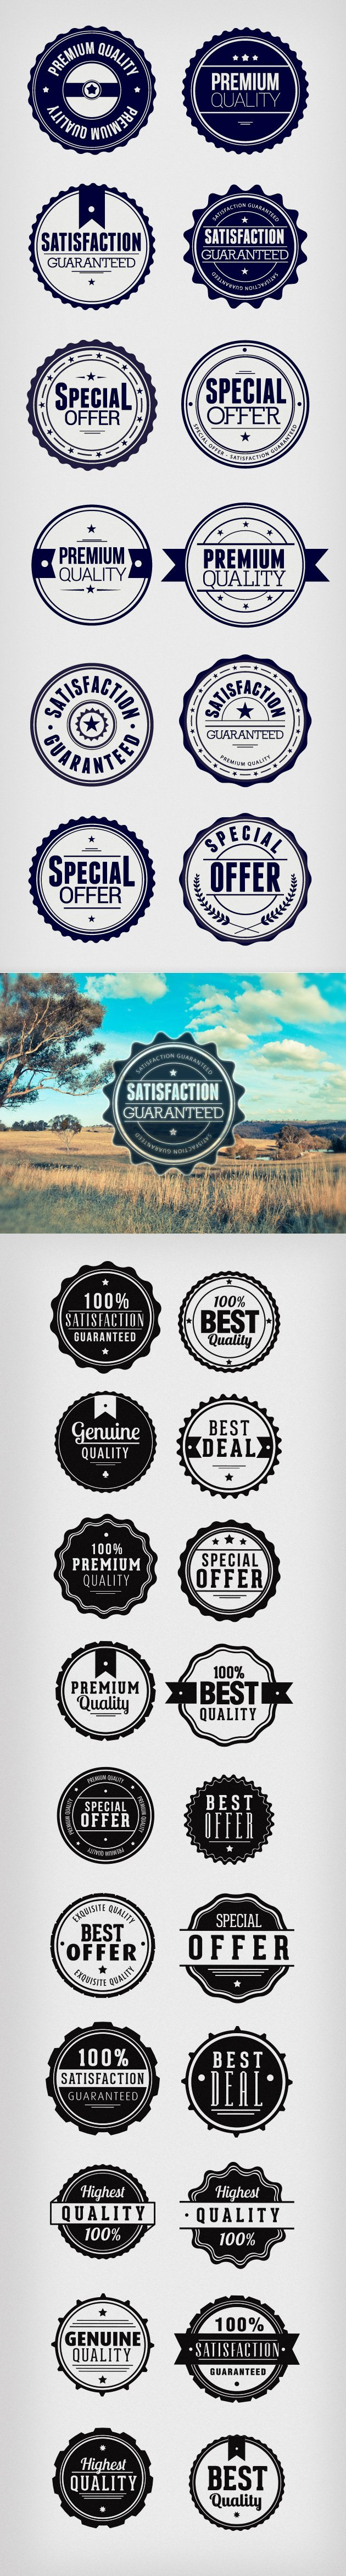 29-free-clean-modern-vector-badges-preview-big